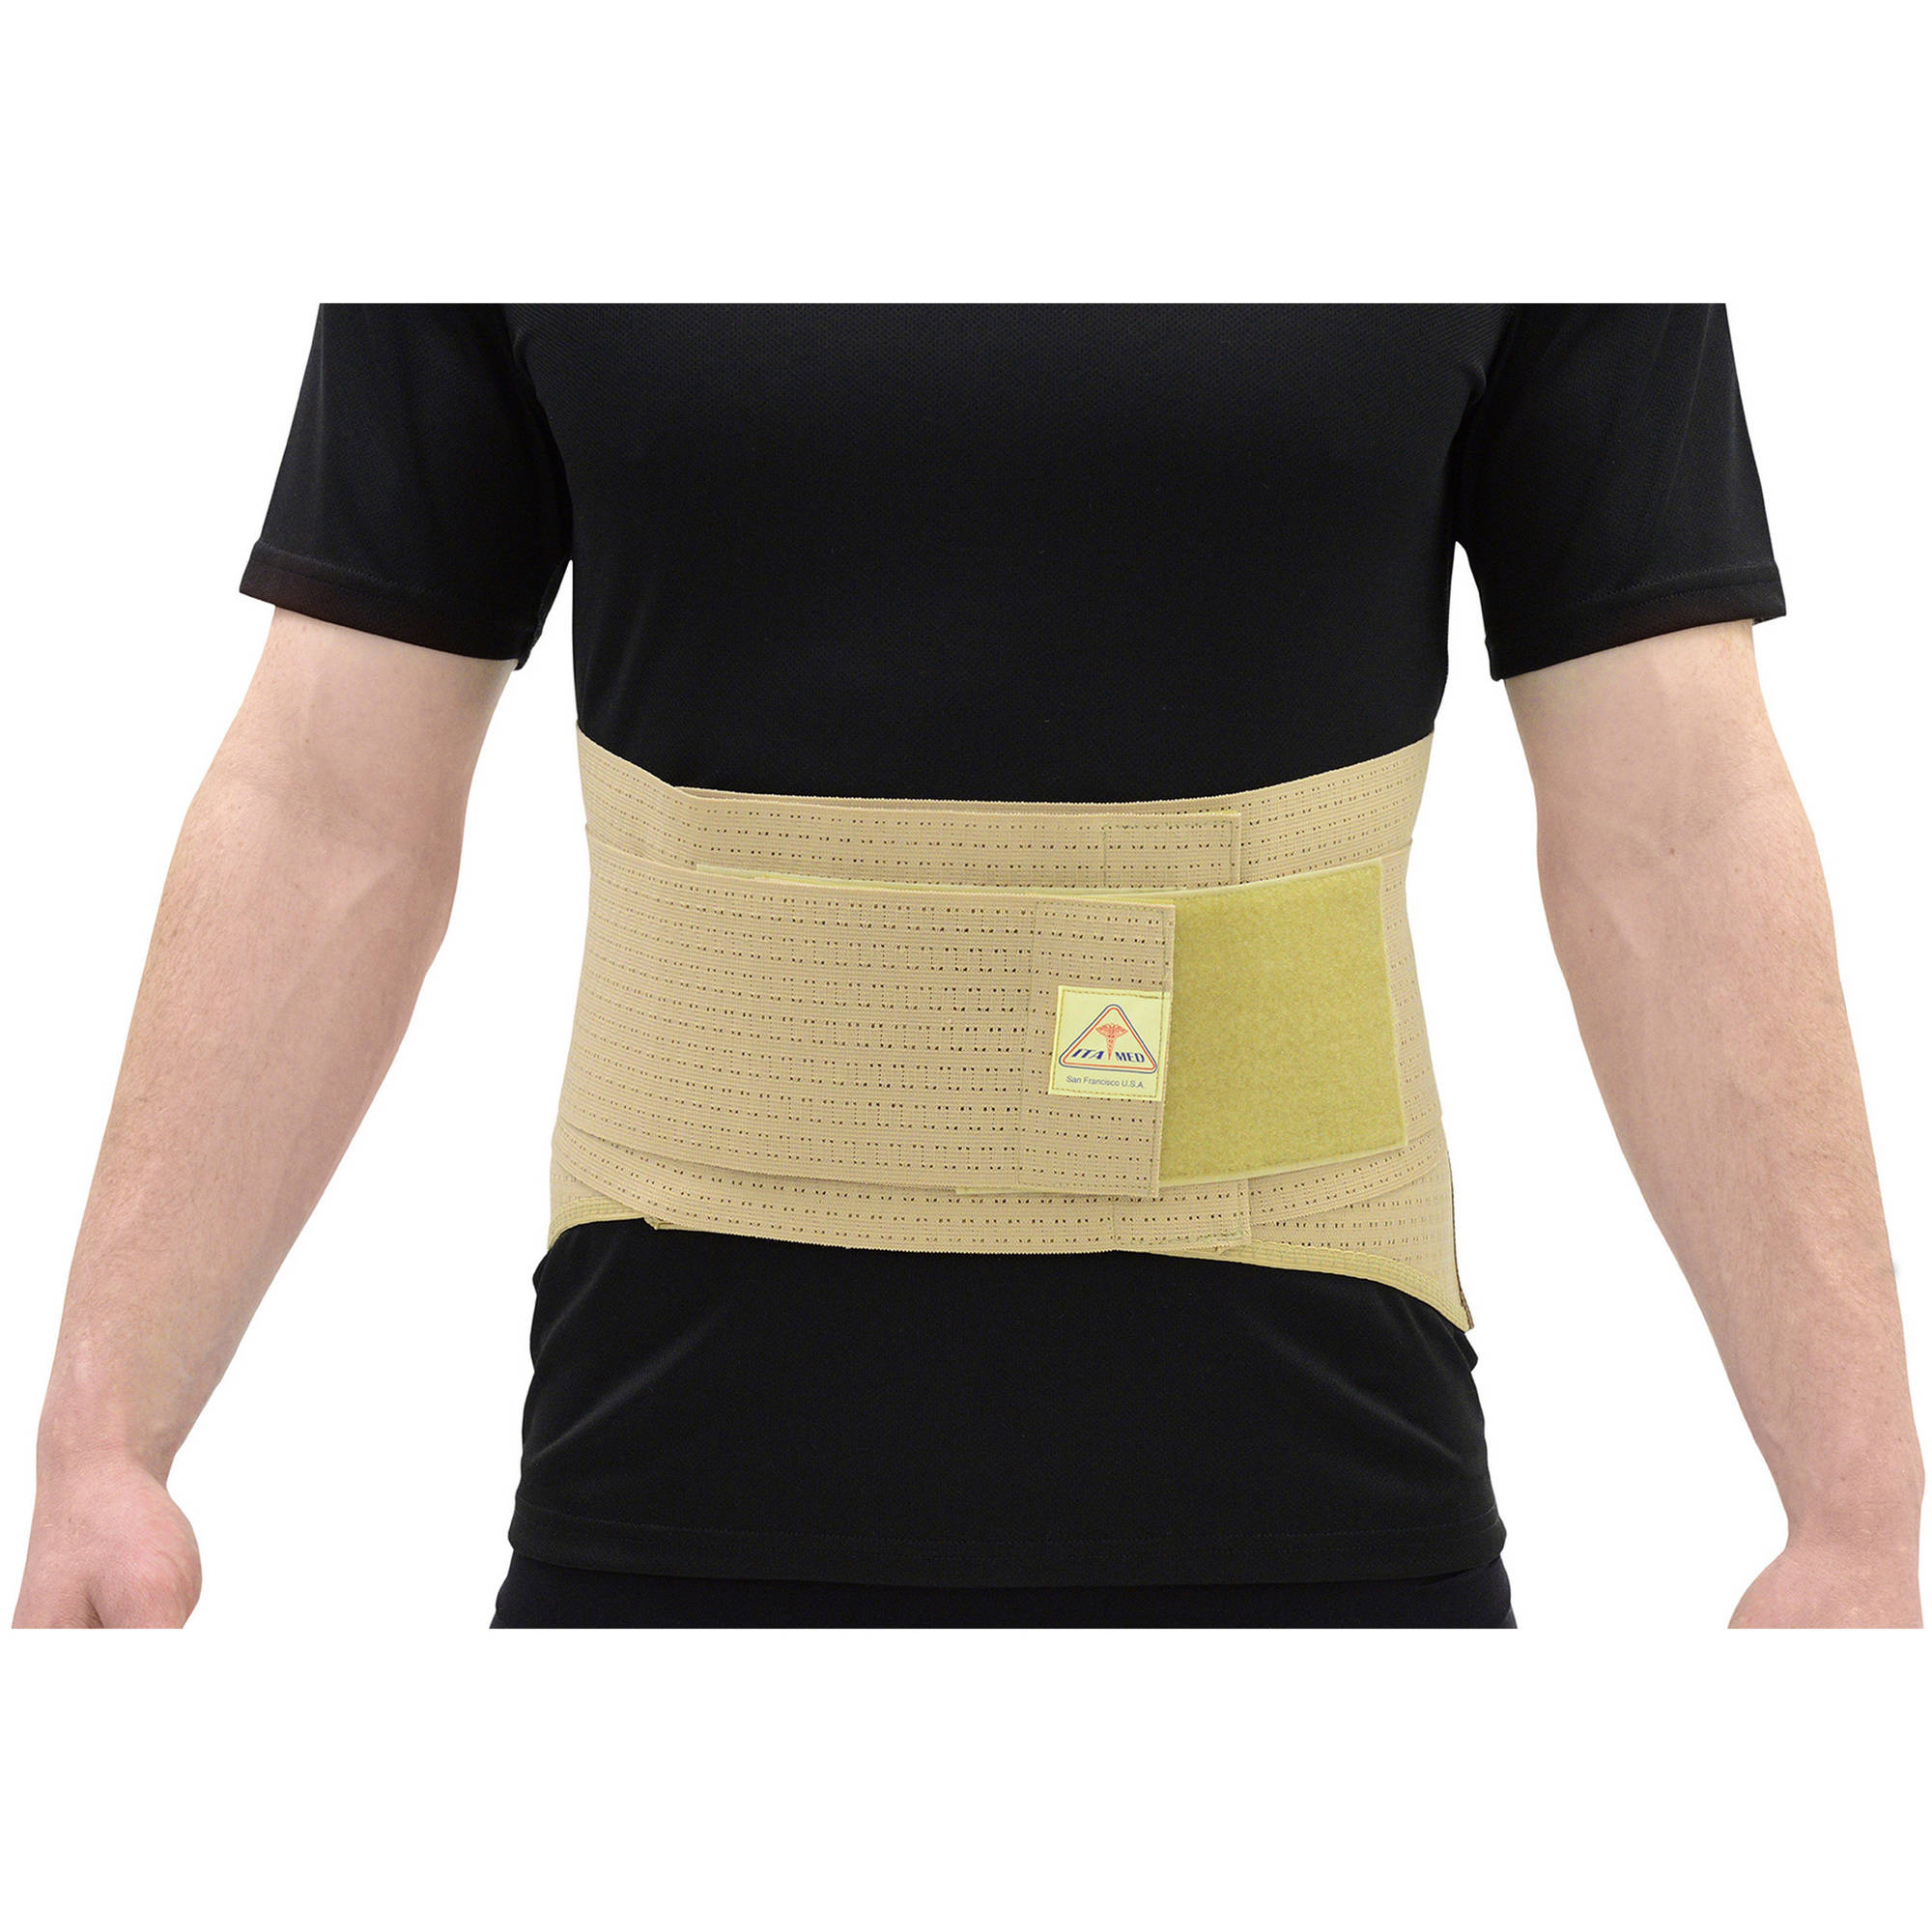 "ITA-MED Elastic Duo-Adjustable Back Support Belt (9"" Wide): BS-229"